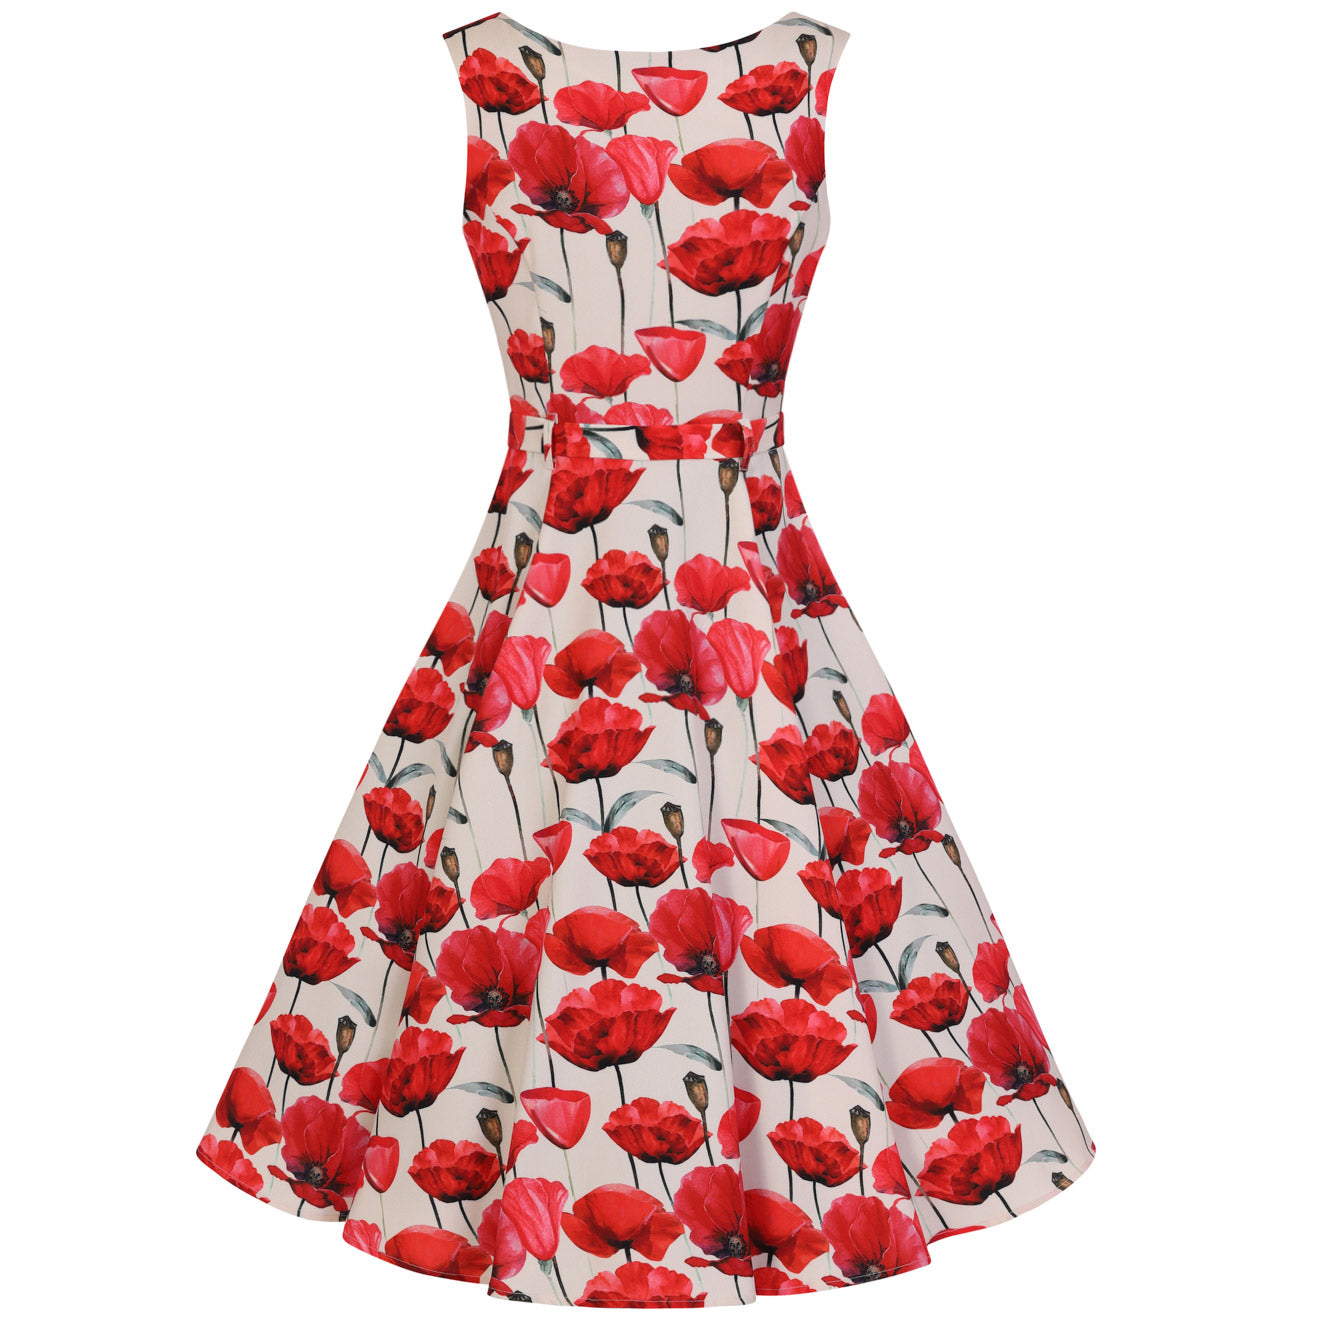 be0b5a8e4d26 Vintage Inspired Dresses - Red - Pretty Kitty Fashion